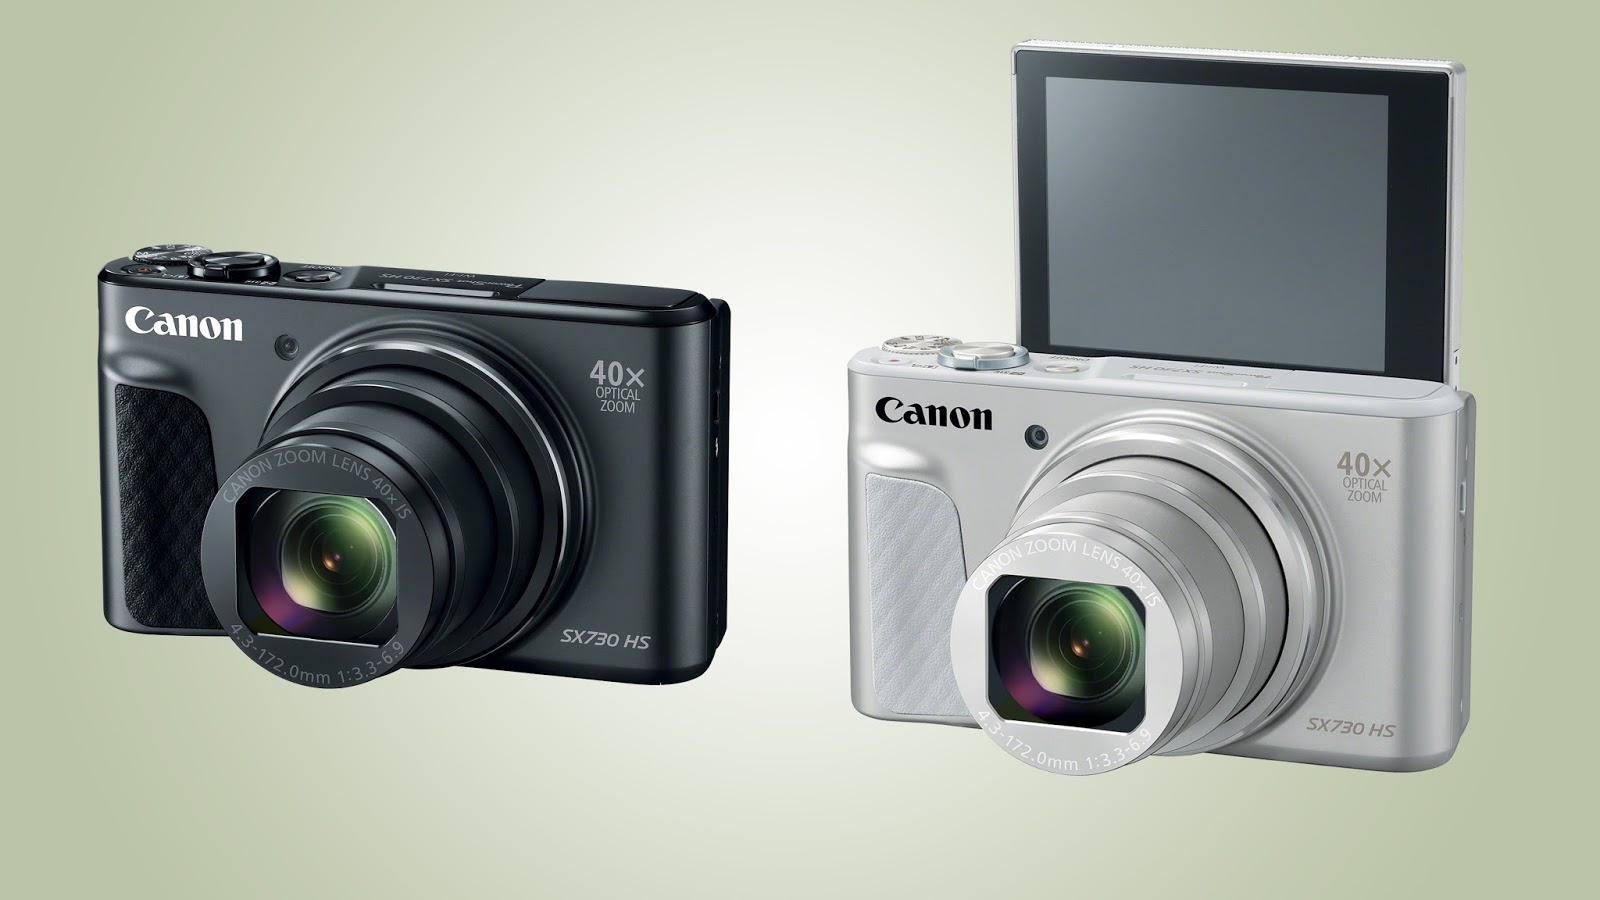 canon launched powershot sx730 hs compact camera with 40x optical zoom scholars globe. Black Bedroom Furniture Sets. Home Design Ideas